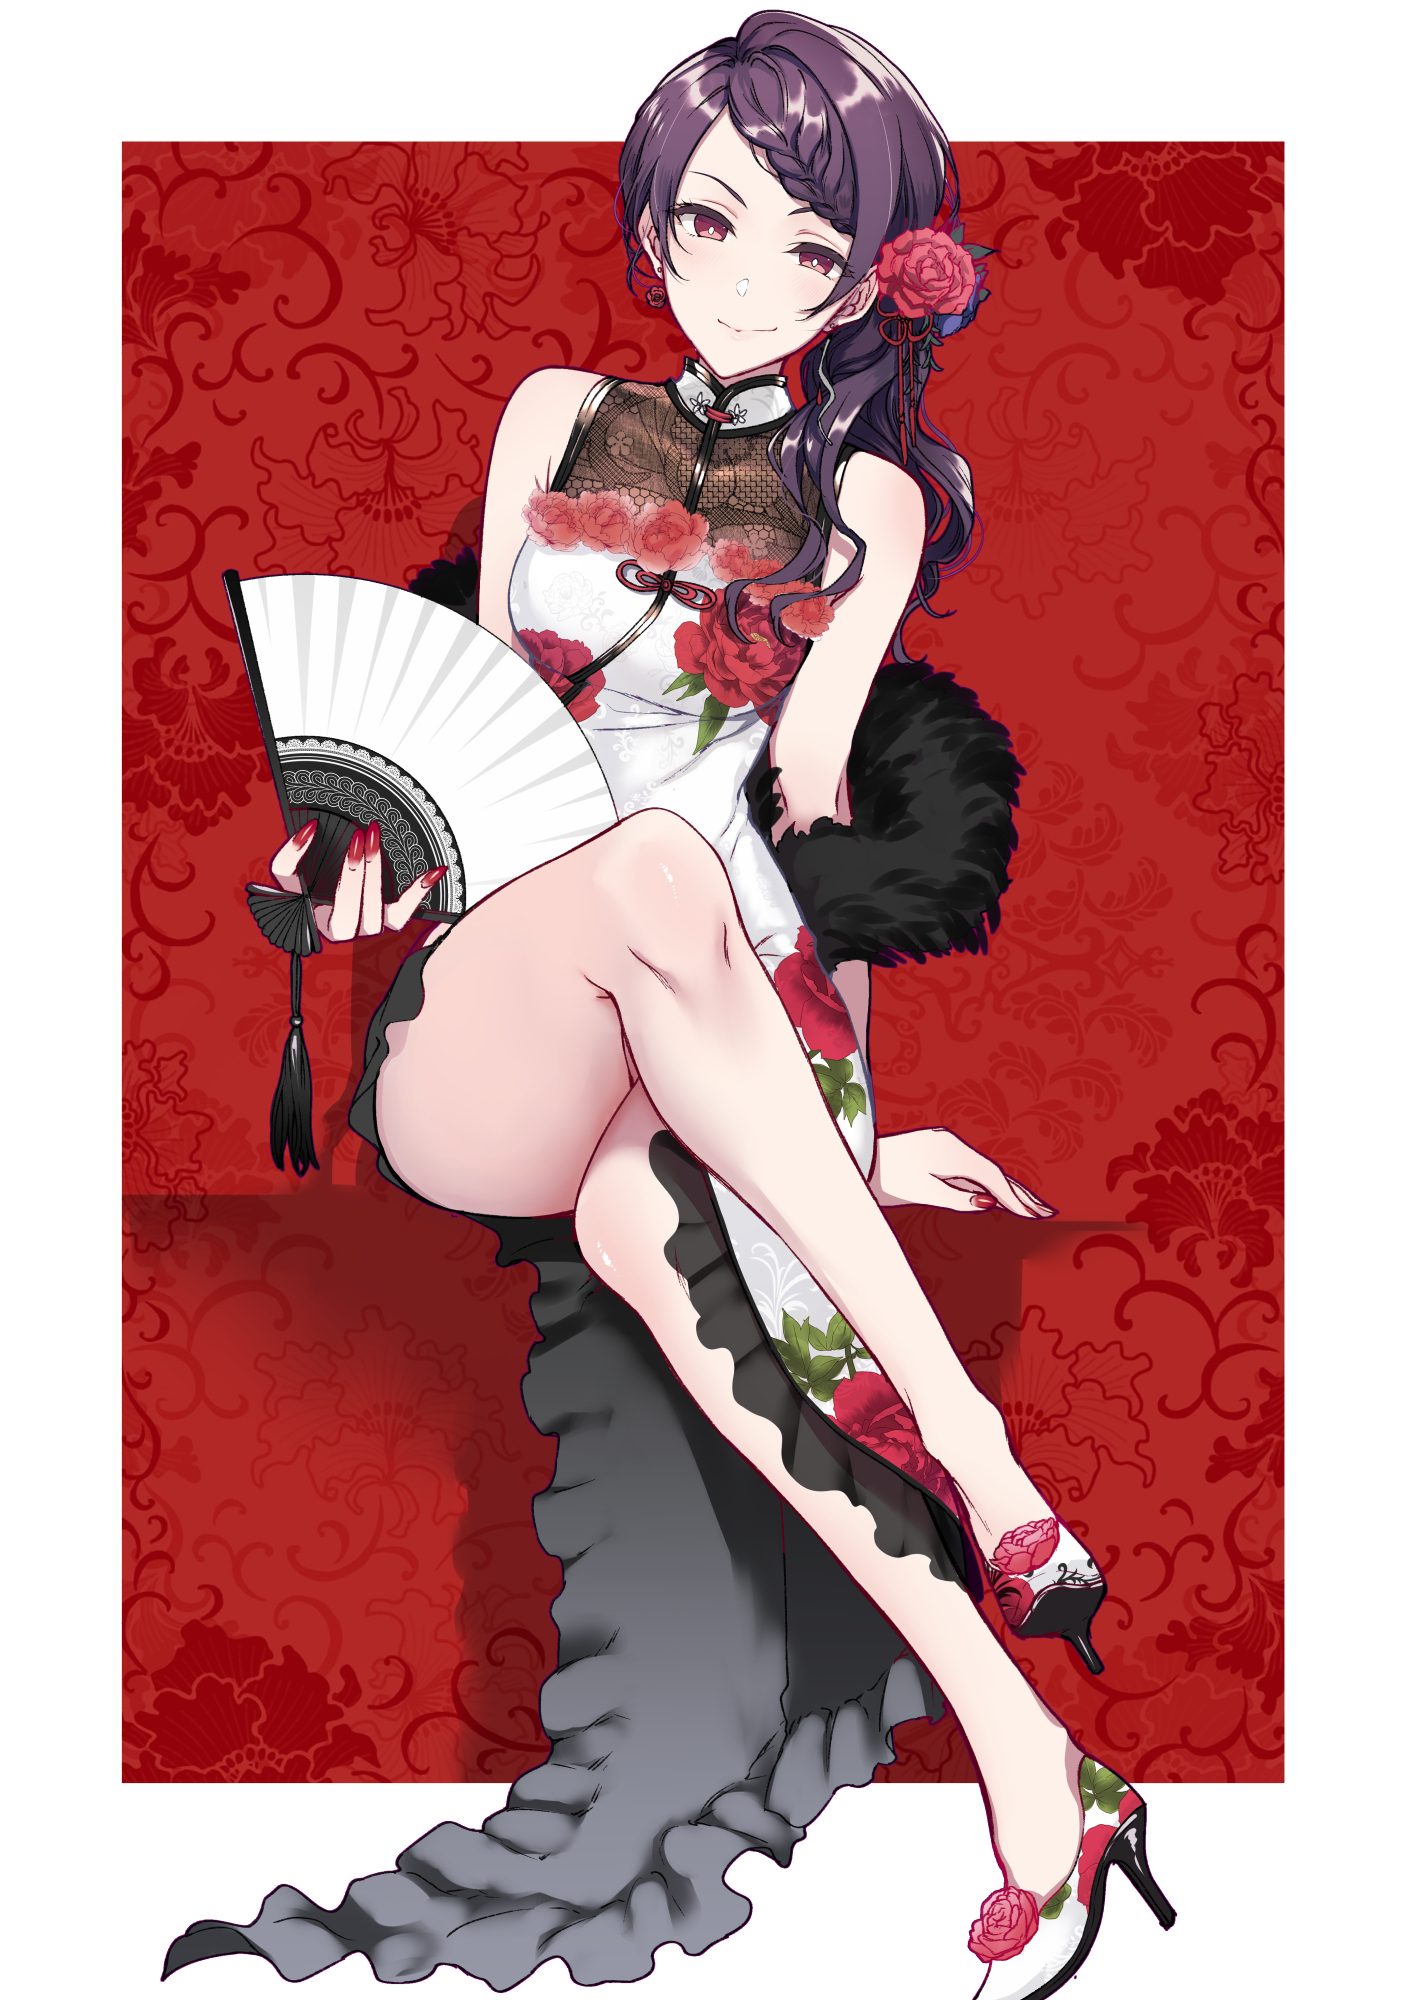 Anime 1416x2000 anime anime girls digital art artwork 2D portrait display vertical Pochigoya Pochi Gundo Mirei Virtual Youtuber Nijisanji qipao Cheongsam Chinese dress heels purple hair smirk